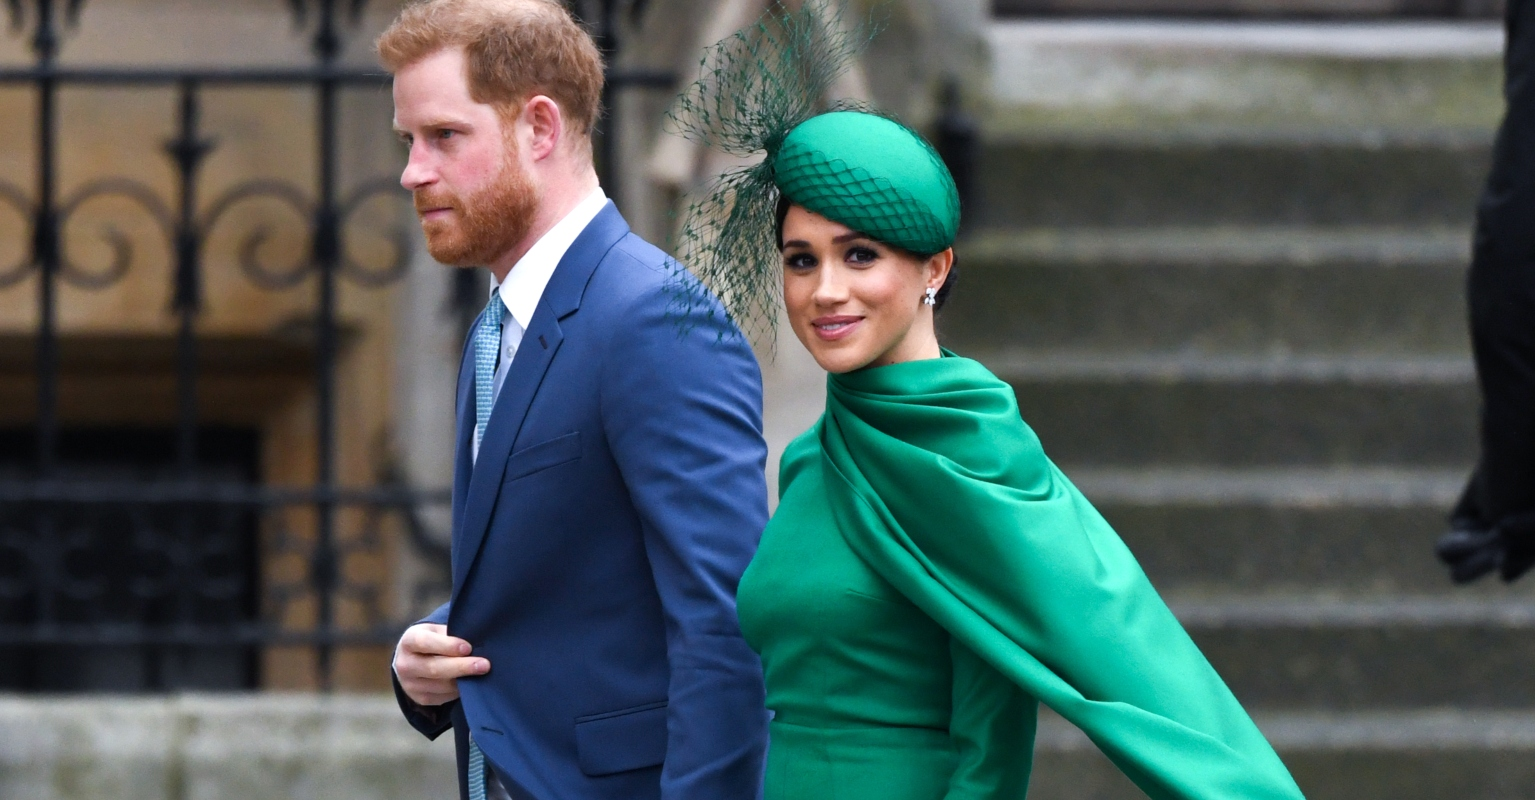 Meghan Markle claims Royal Family 'perpetuated falsehoods' about her and Harry during Oprah interview